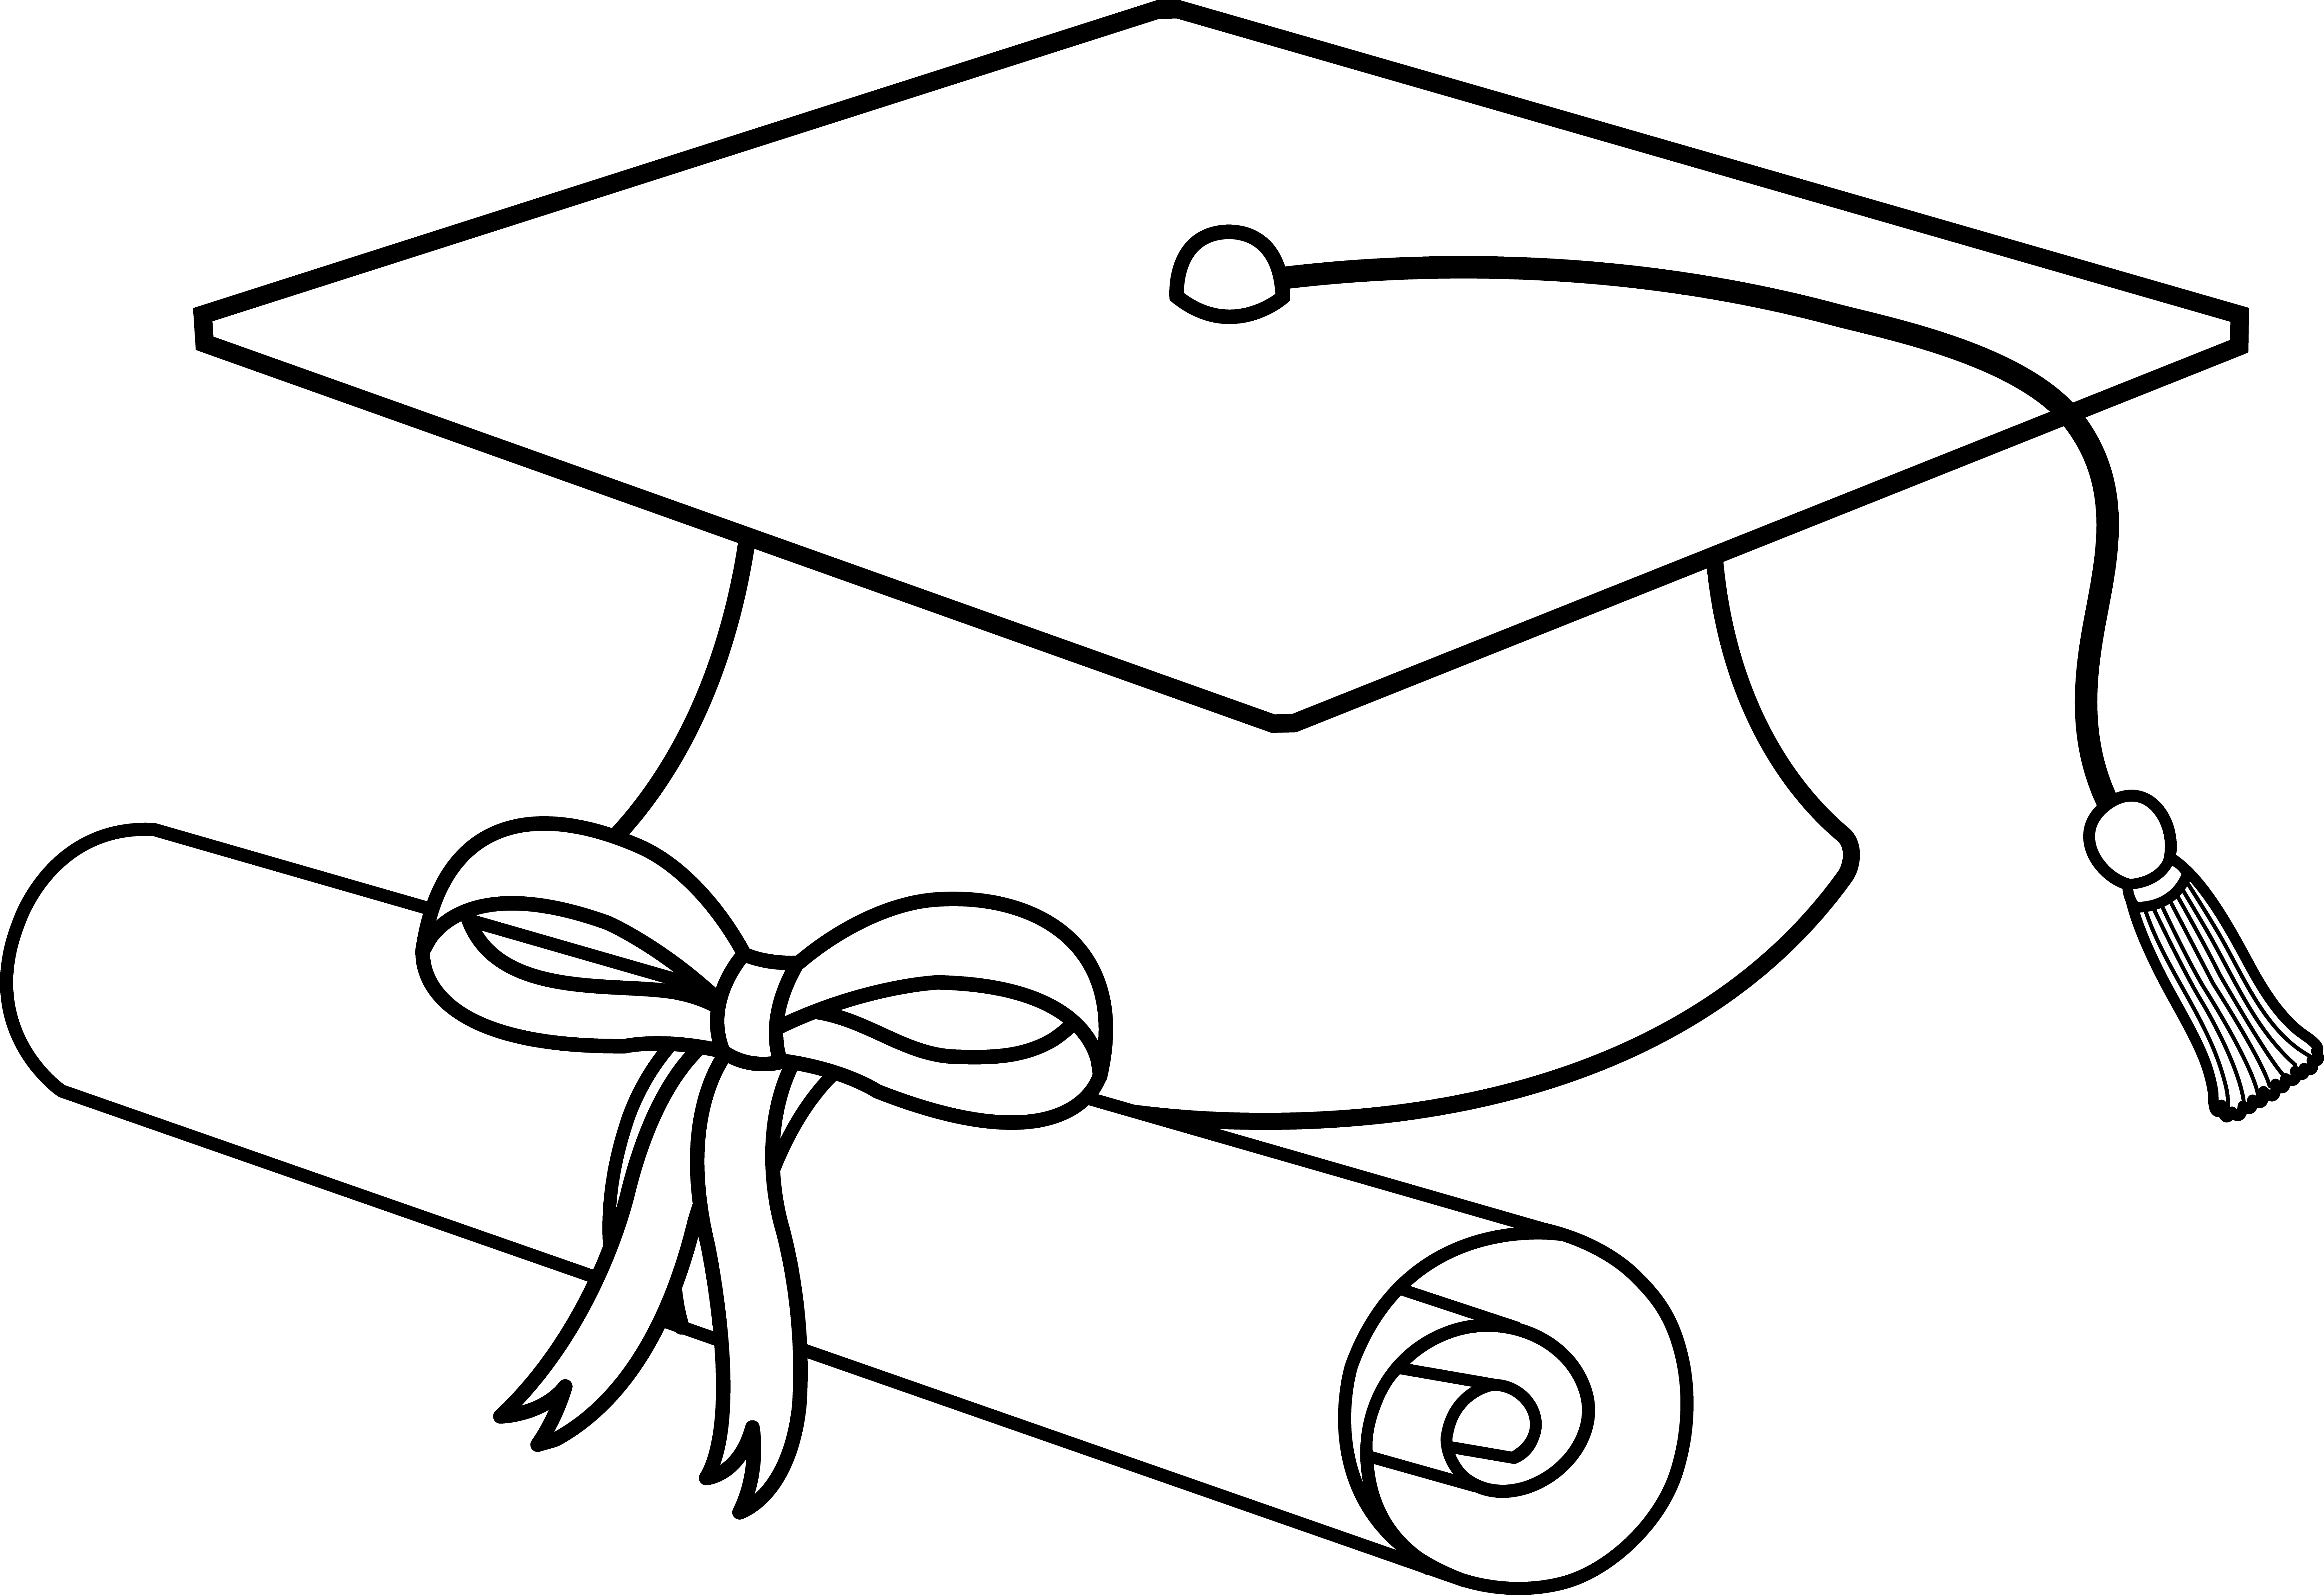 Cap And Gown Clipart Free - Cliparts.co